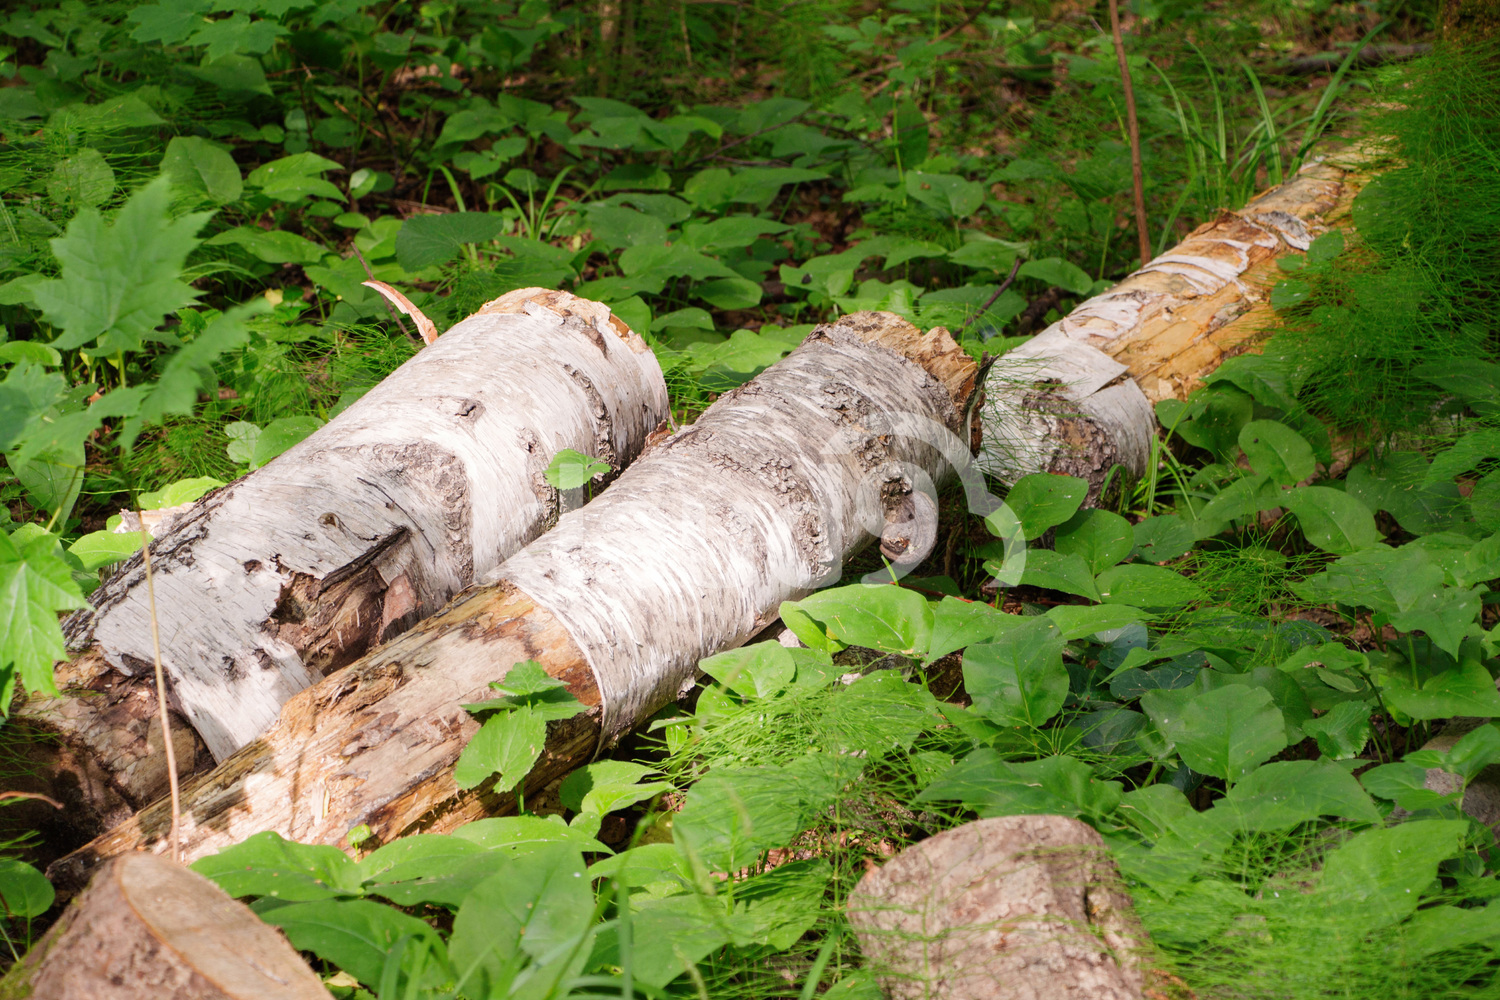 old birch tree logs in the forest